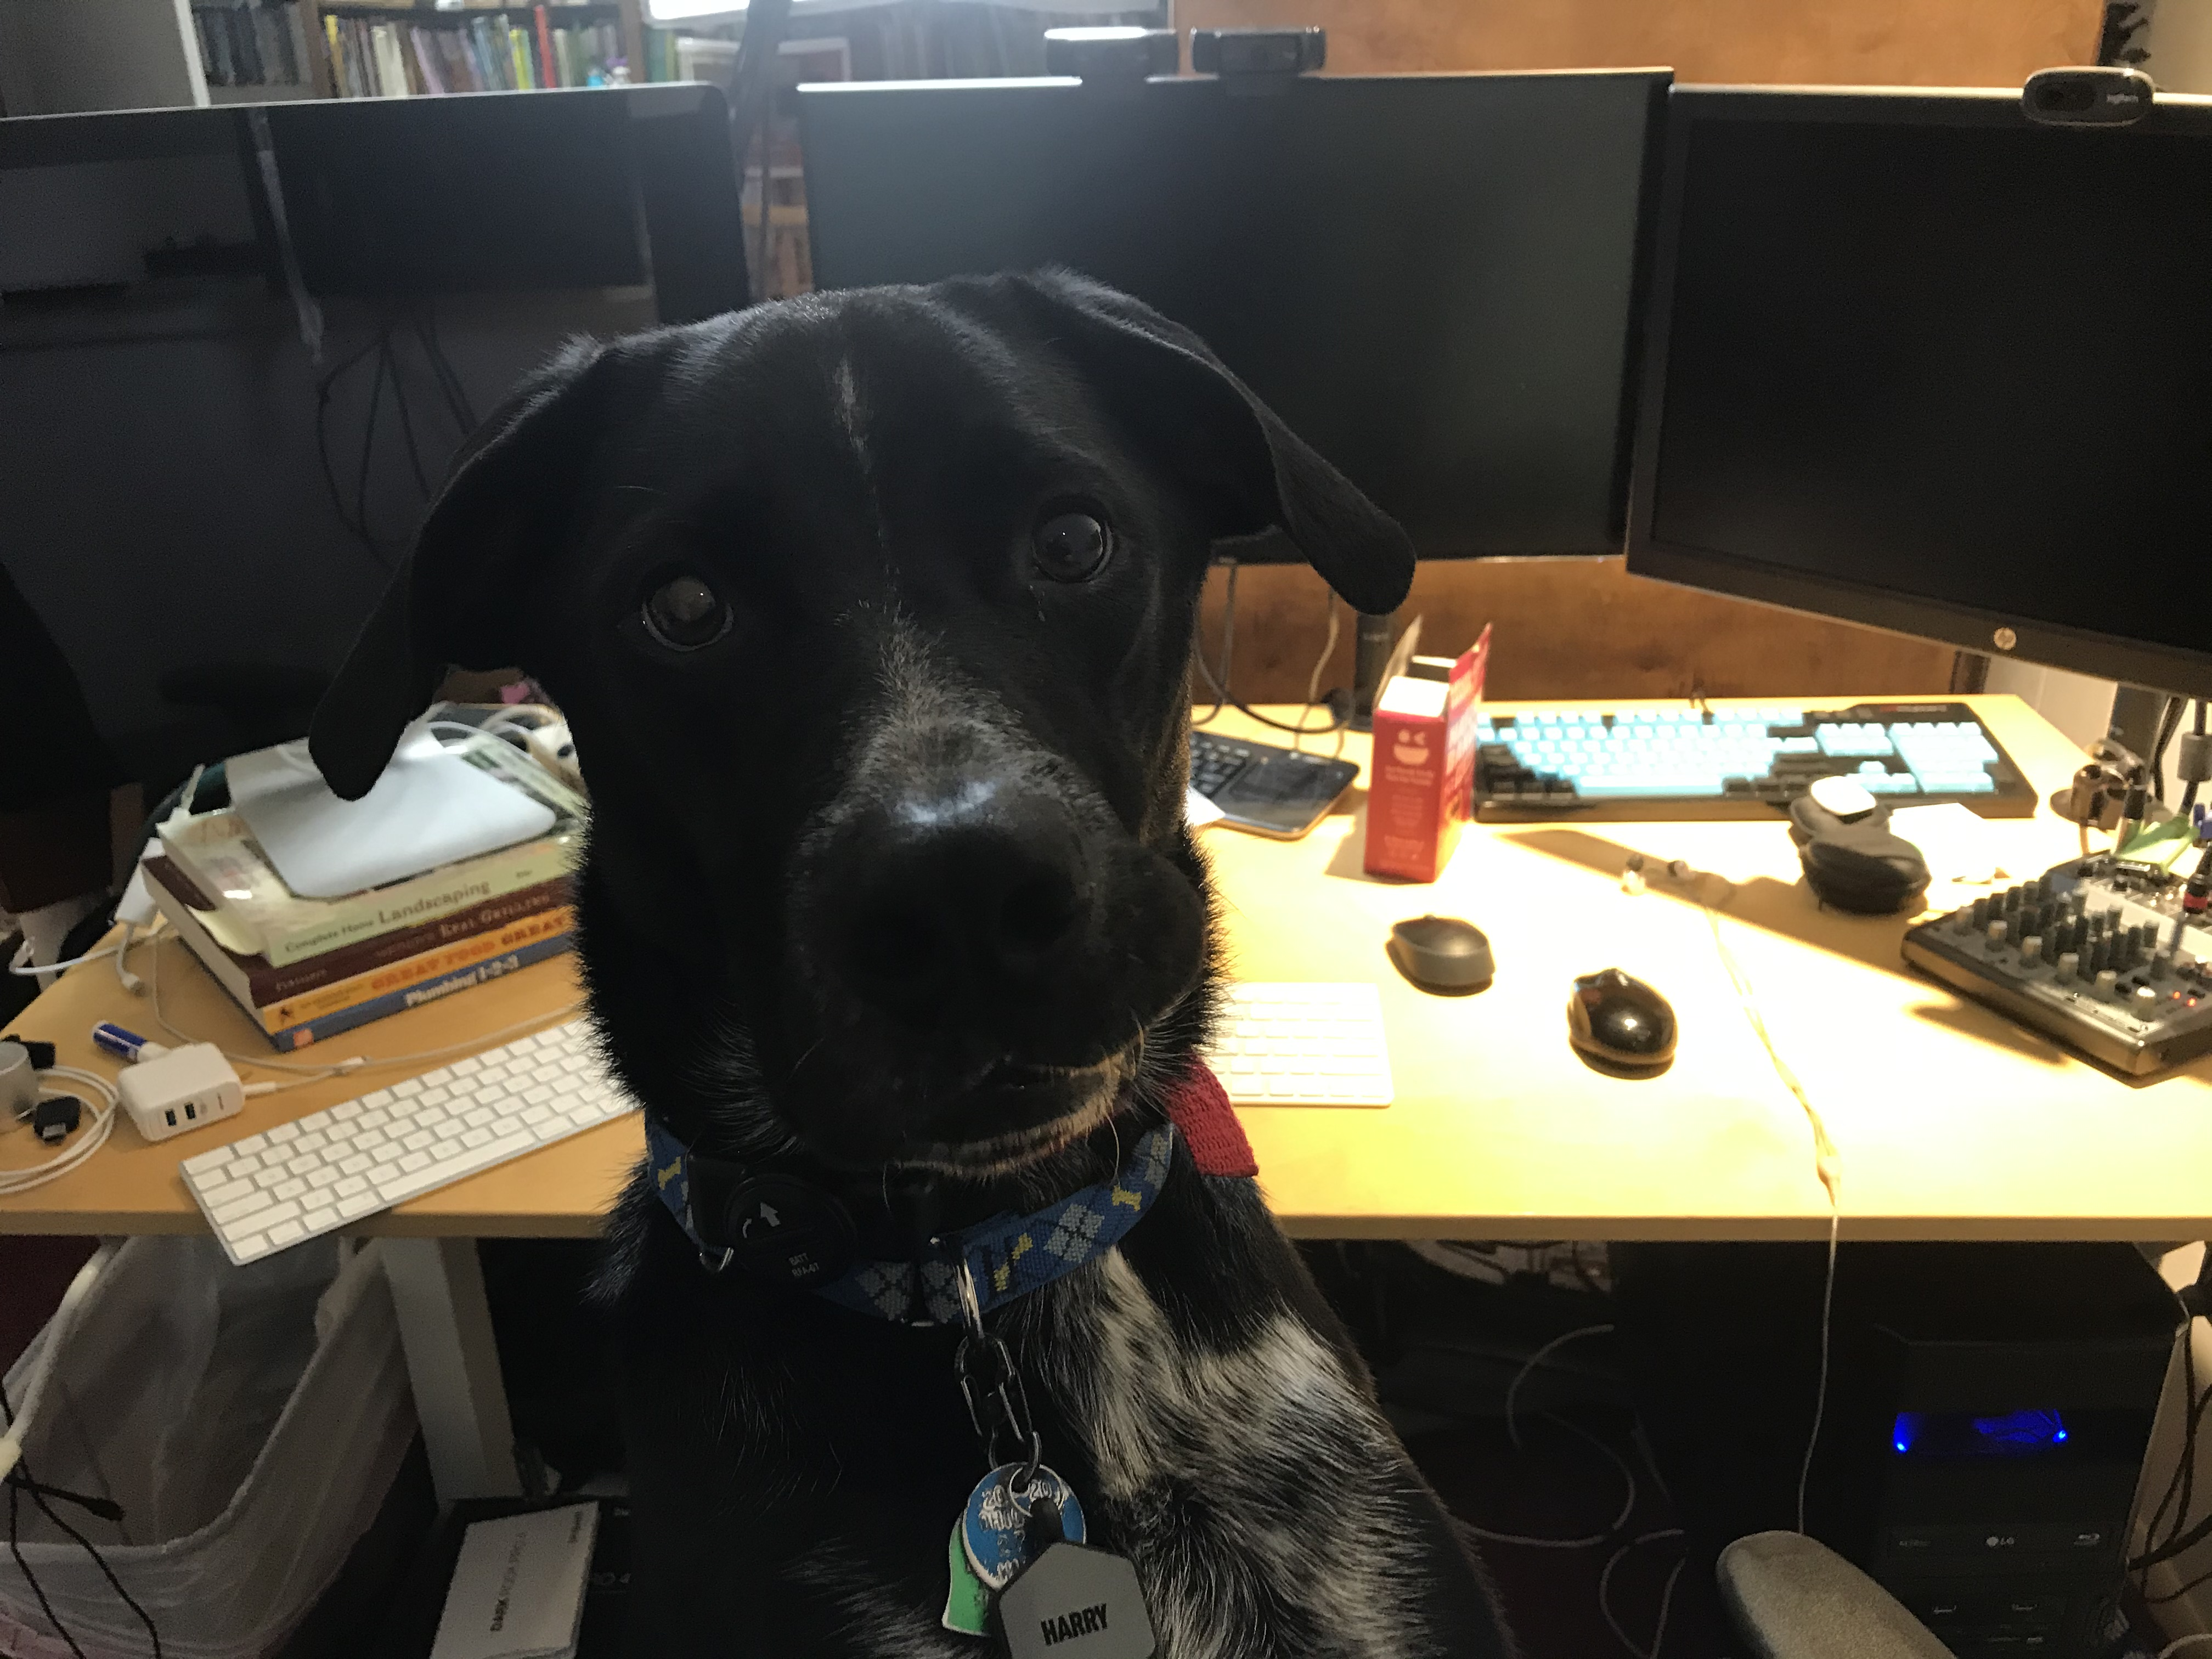 Dog at computer setup